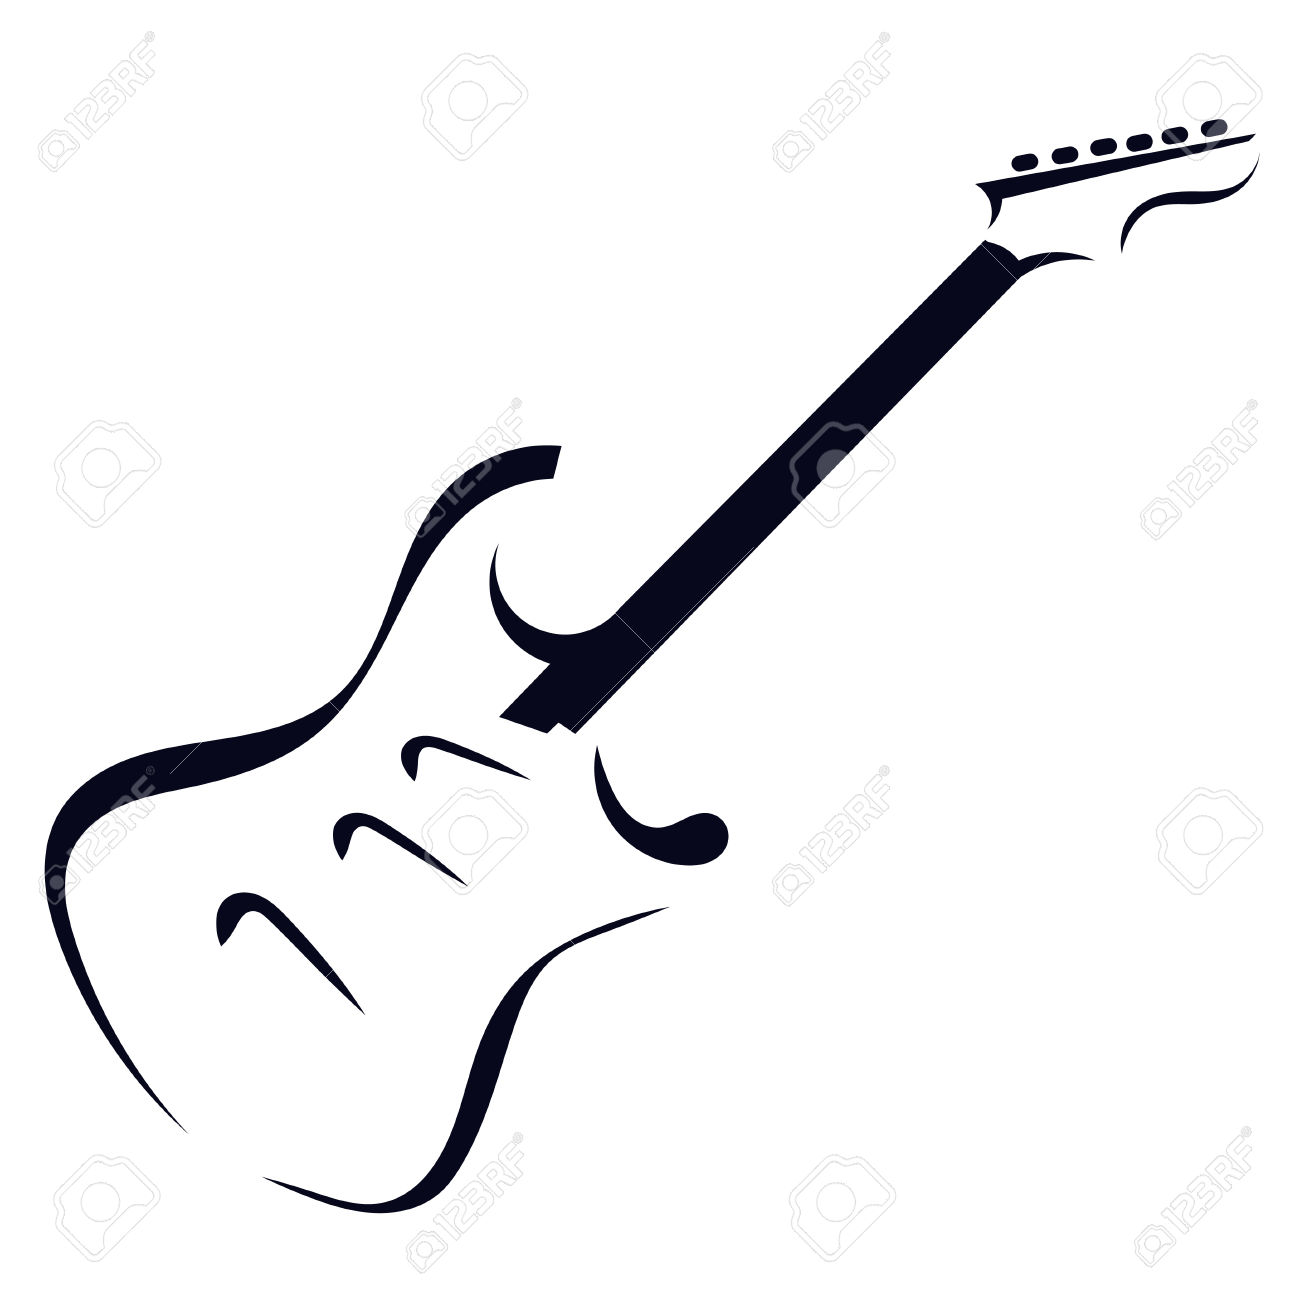 1300x1300 Guitar clipart guitar neck